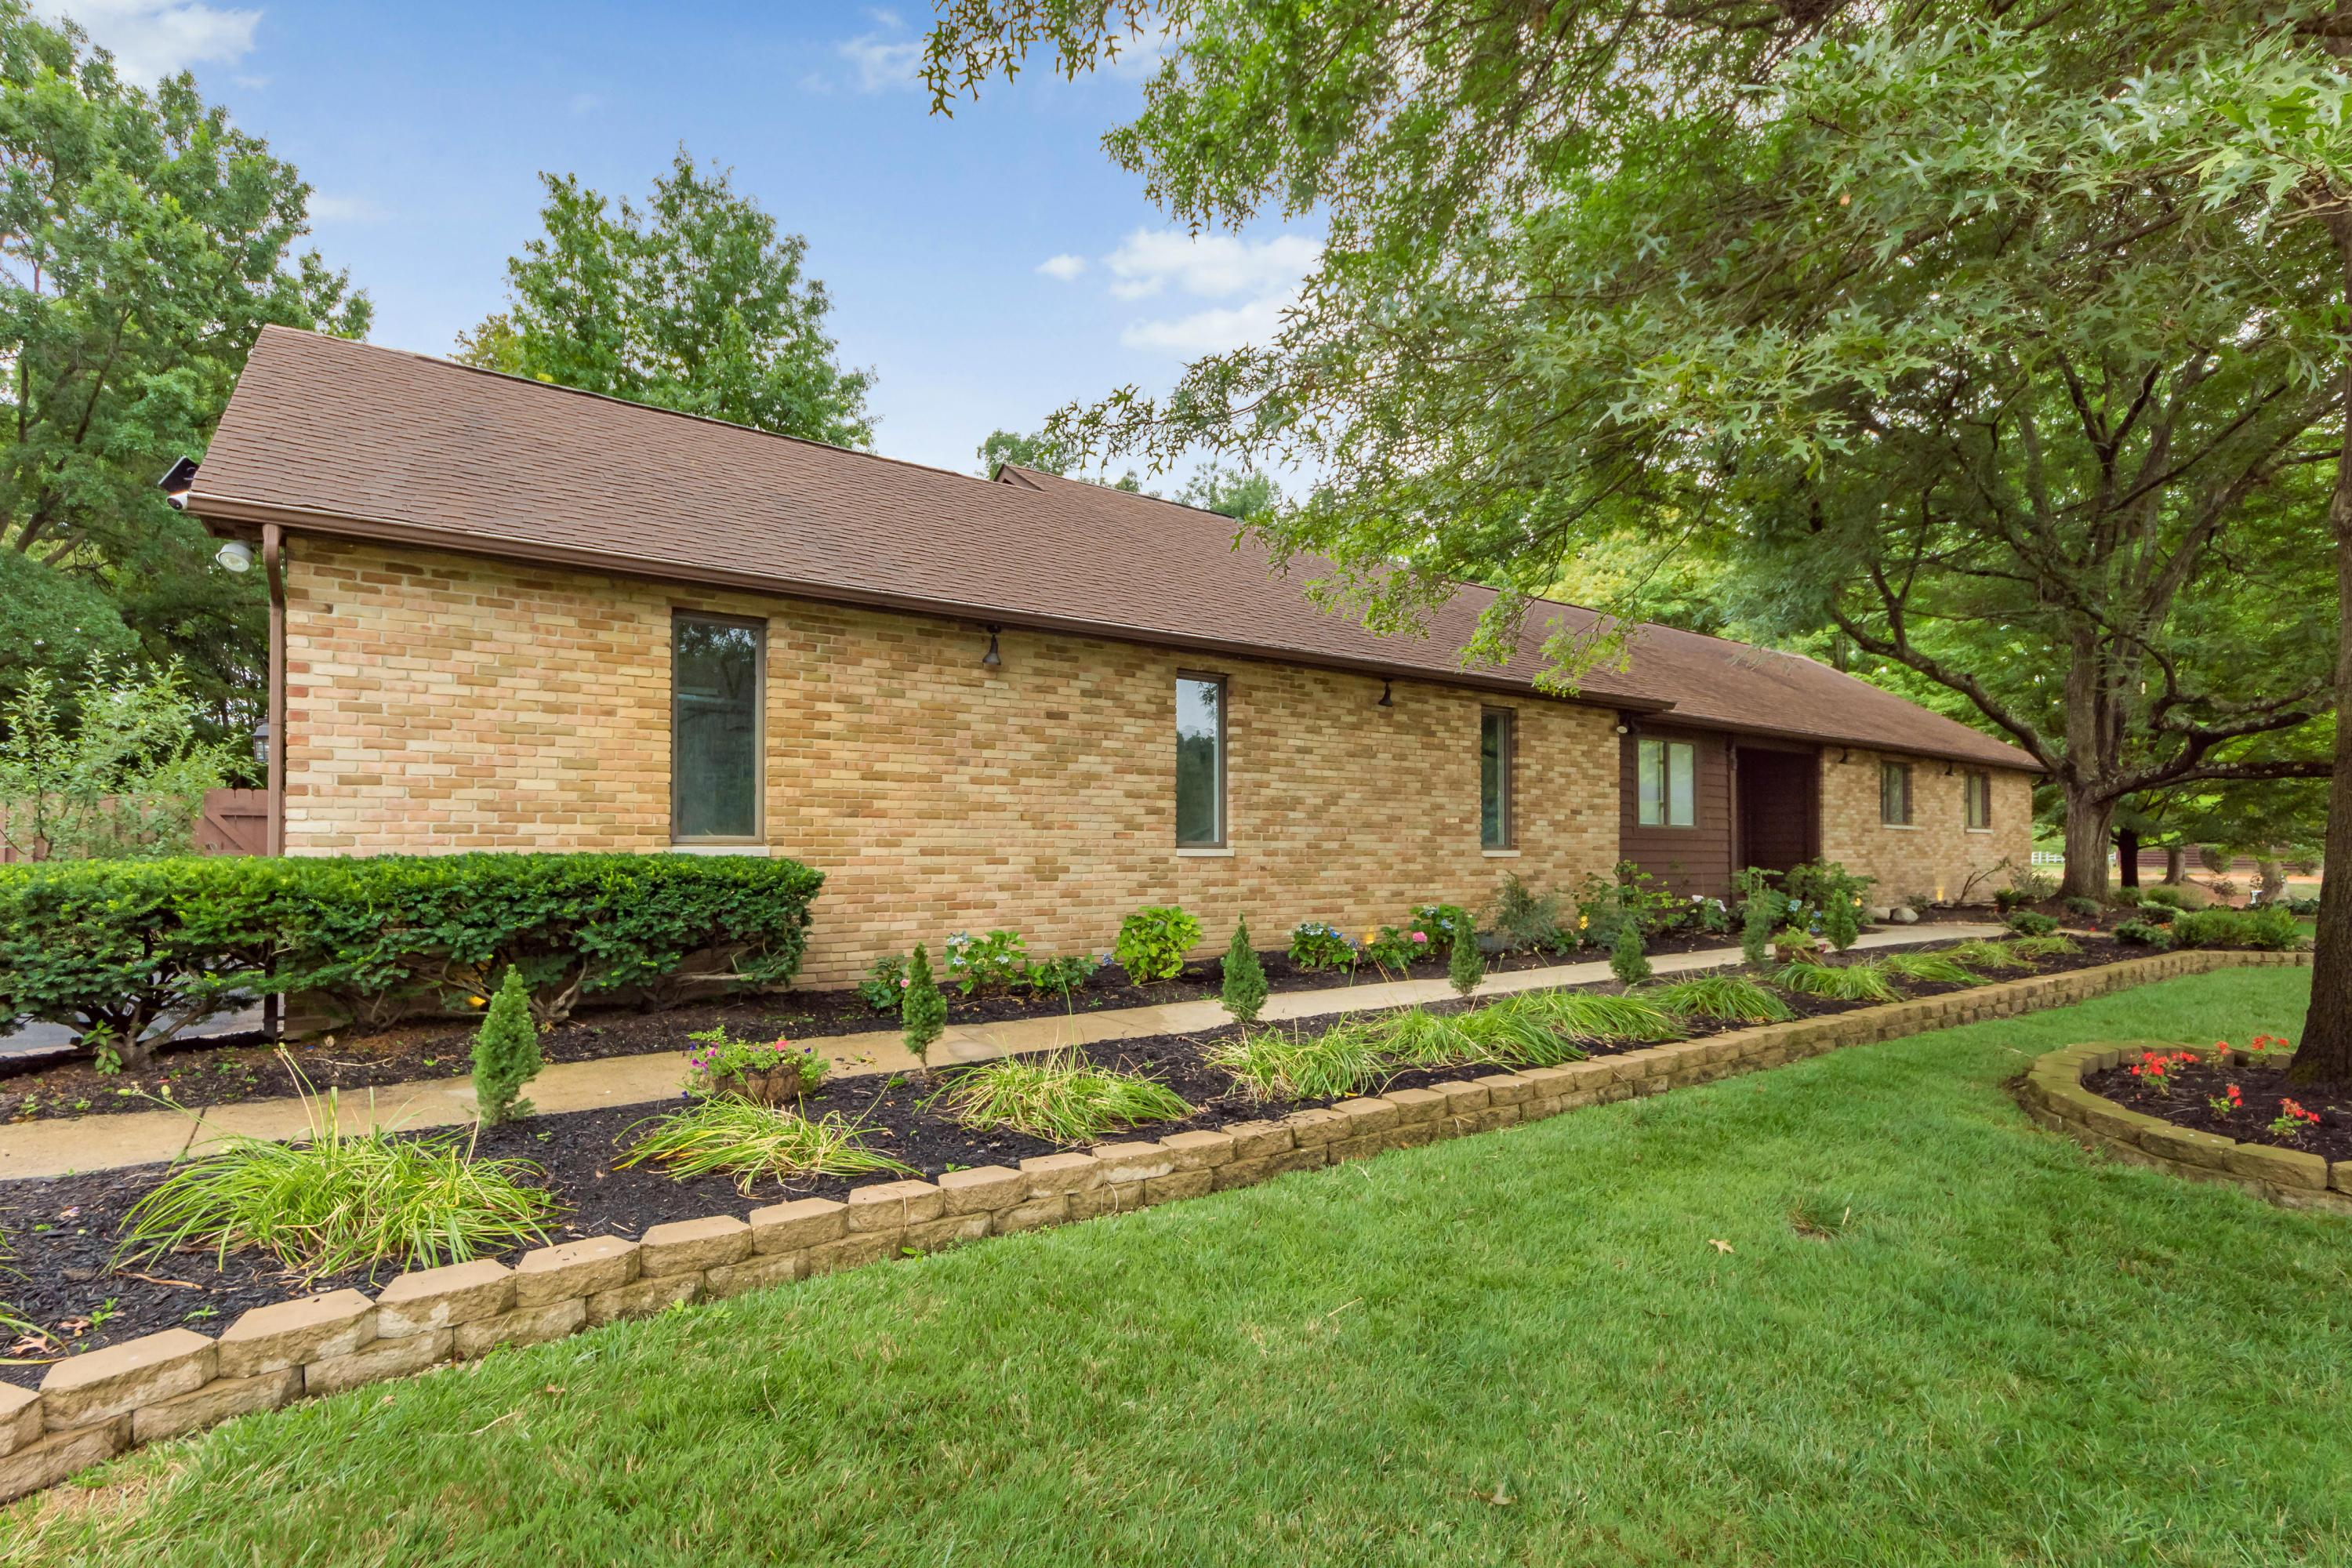 5437 Olde Dublin Woods Drive, Dublin, Ohio 43016, 3 Bedrooms Bedrooms, ,3 BathroomsBathrooms,Residential,For Sale,Olde Dublin Woods,220025752